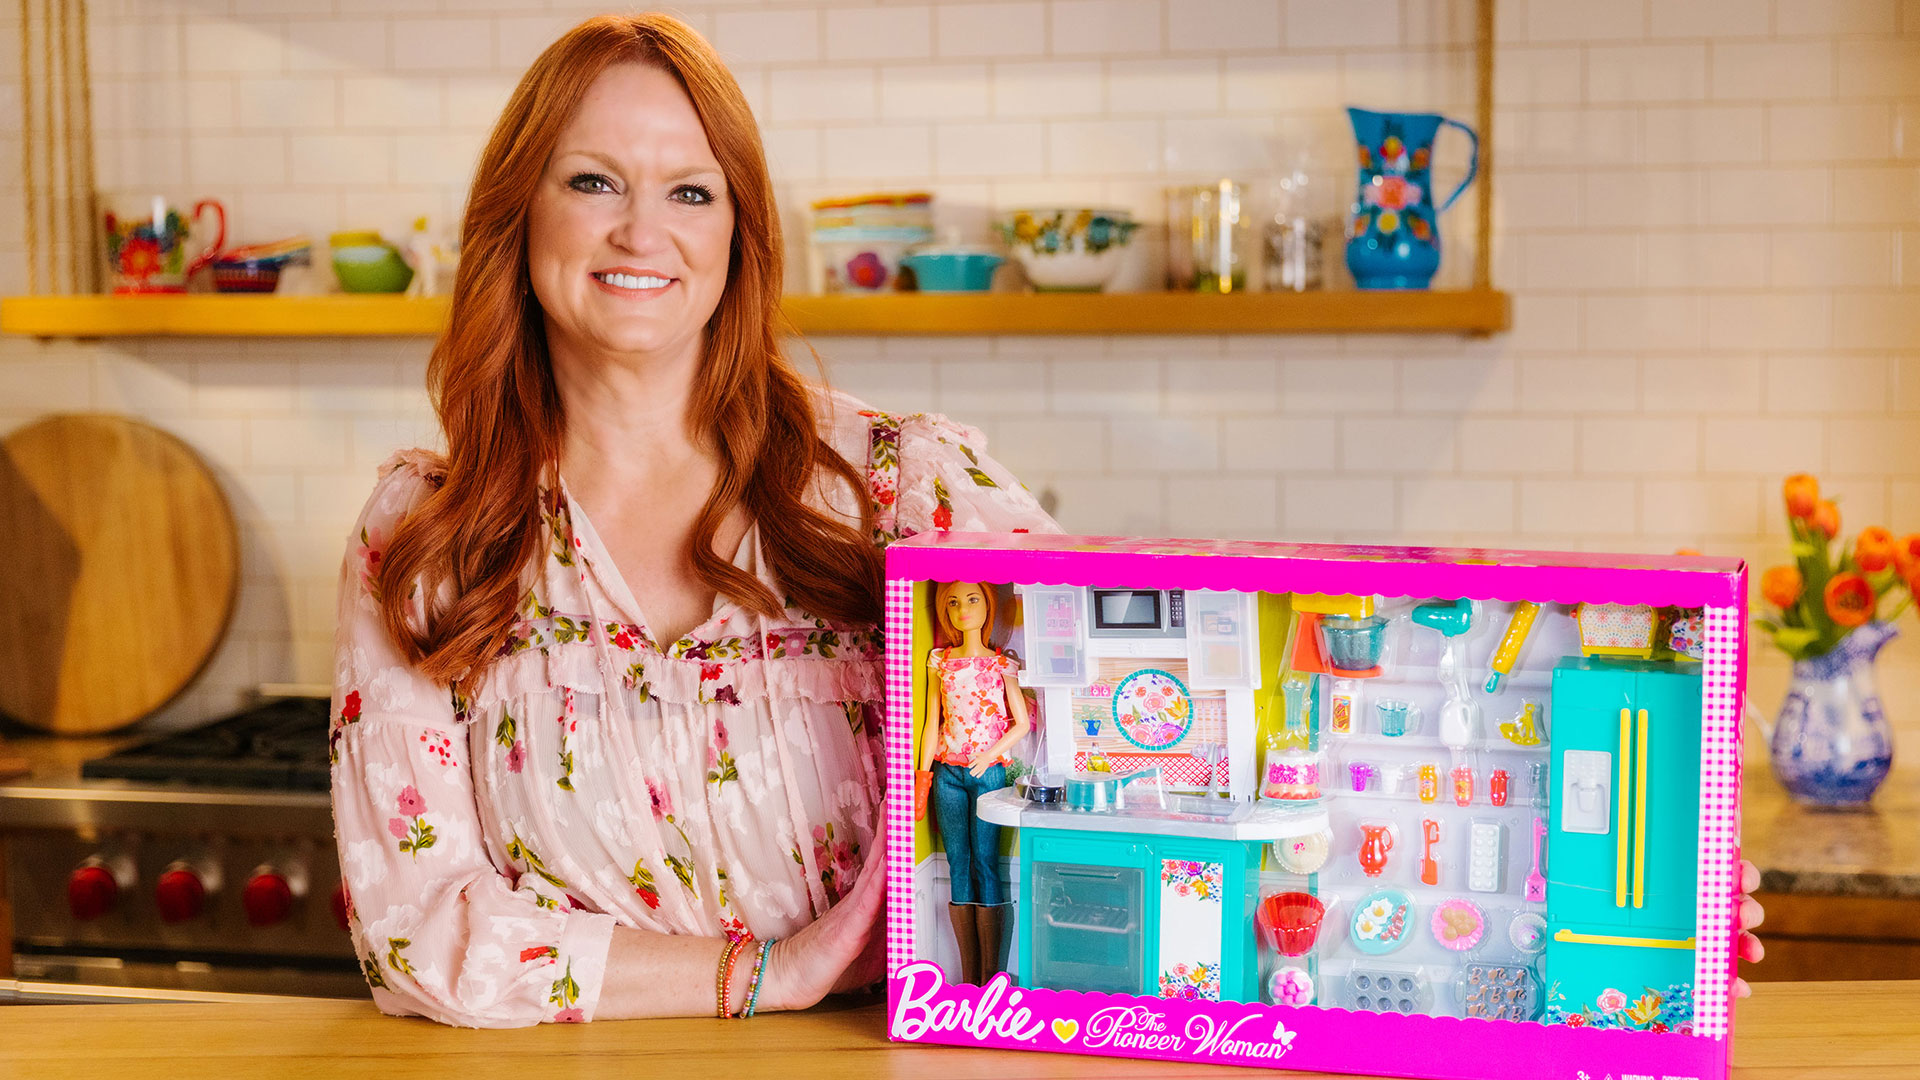 barbie kitchen playset 8 island ree drummond now has her very own play set it s already sold out